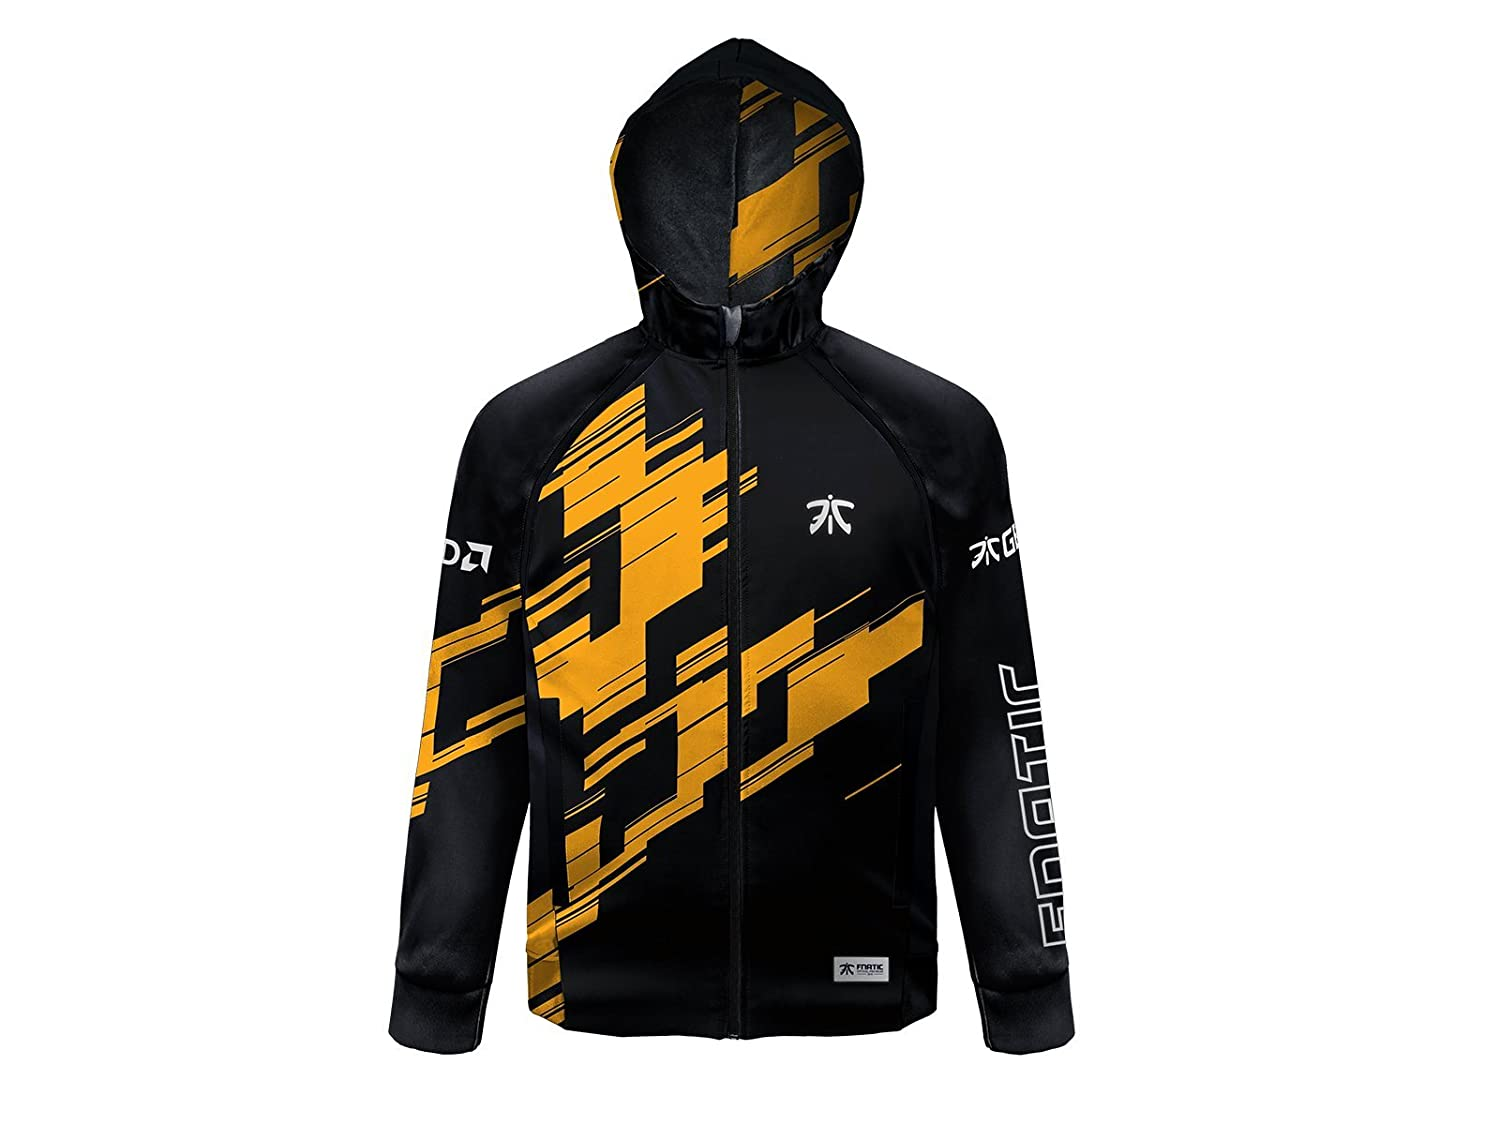 Fnatic Player Pro Wear Hooded Jacket 2018 (Reflective, Esports)